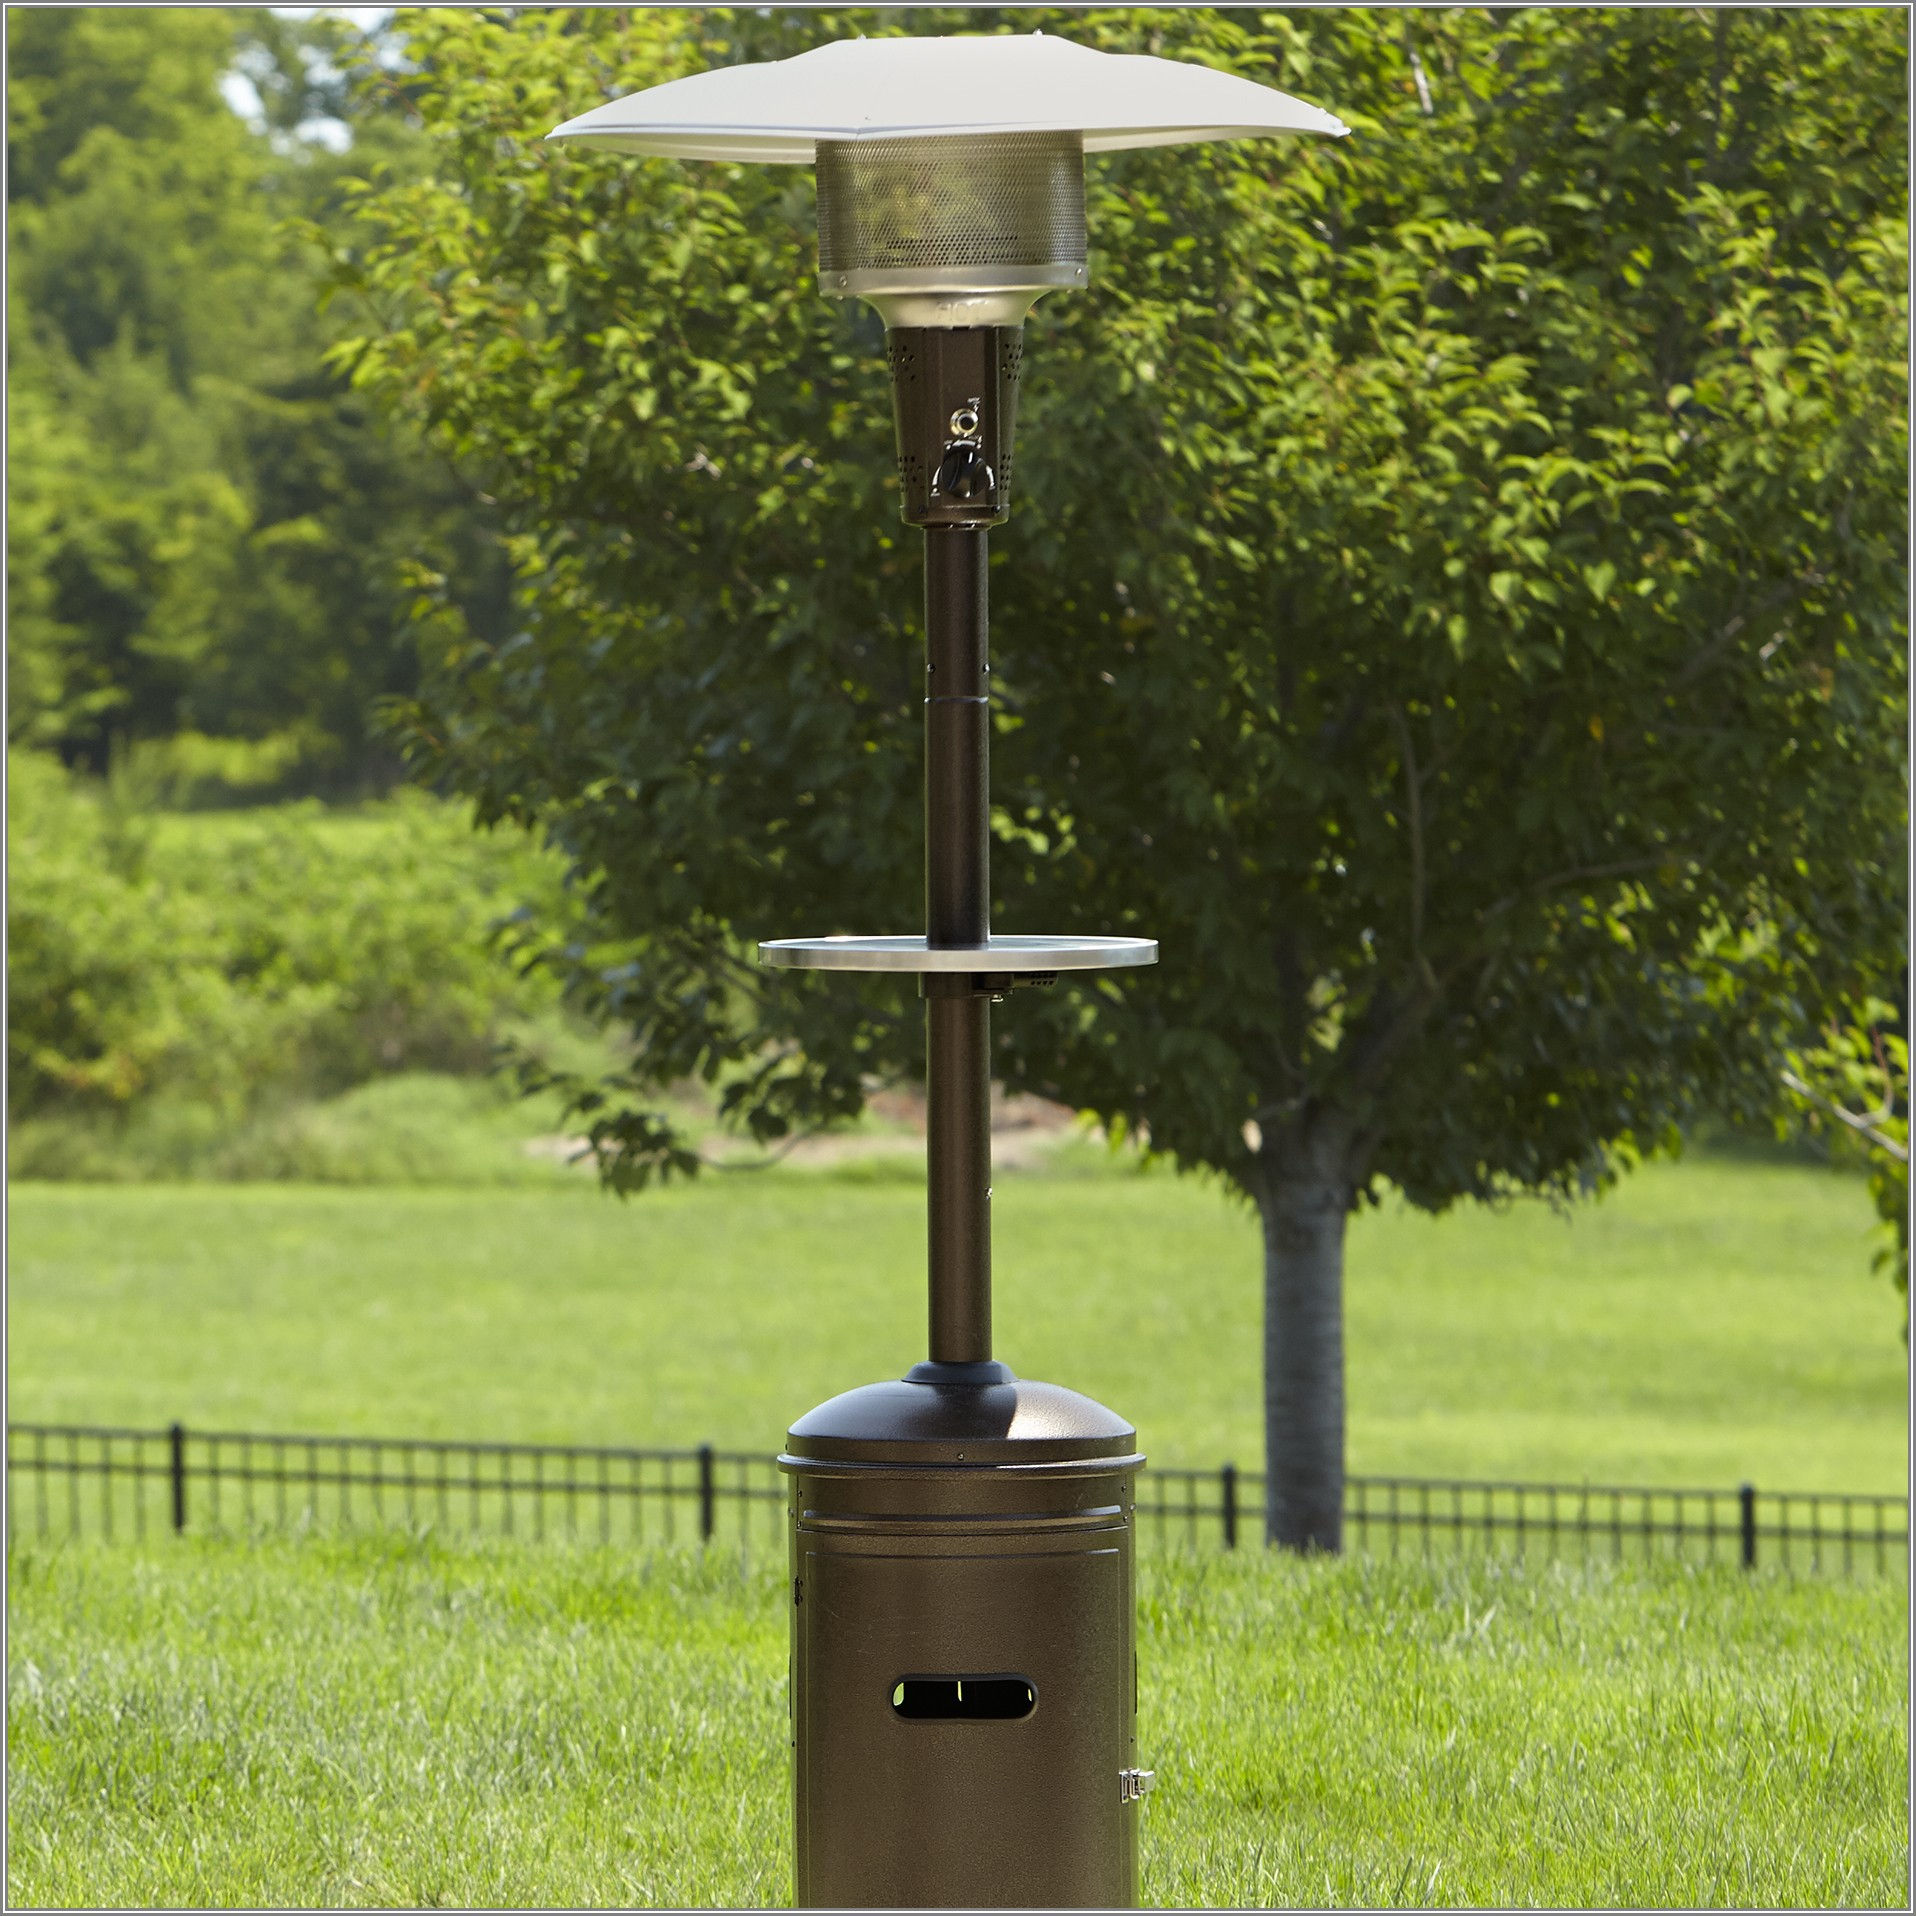 Heatmaxx Outdoor Patio Heater 40000 Btu